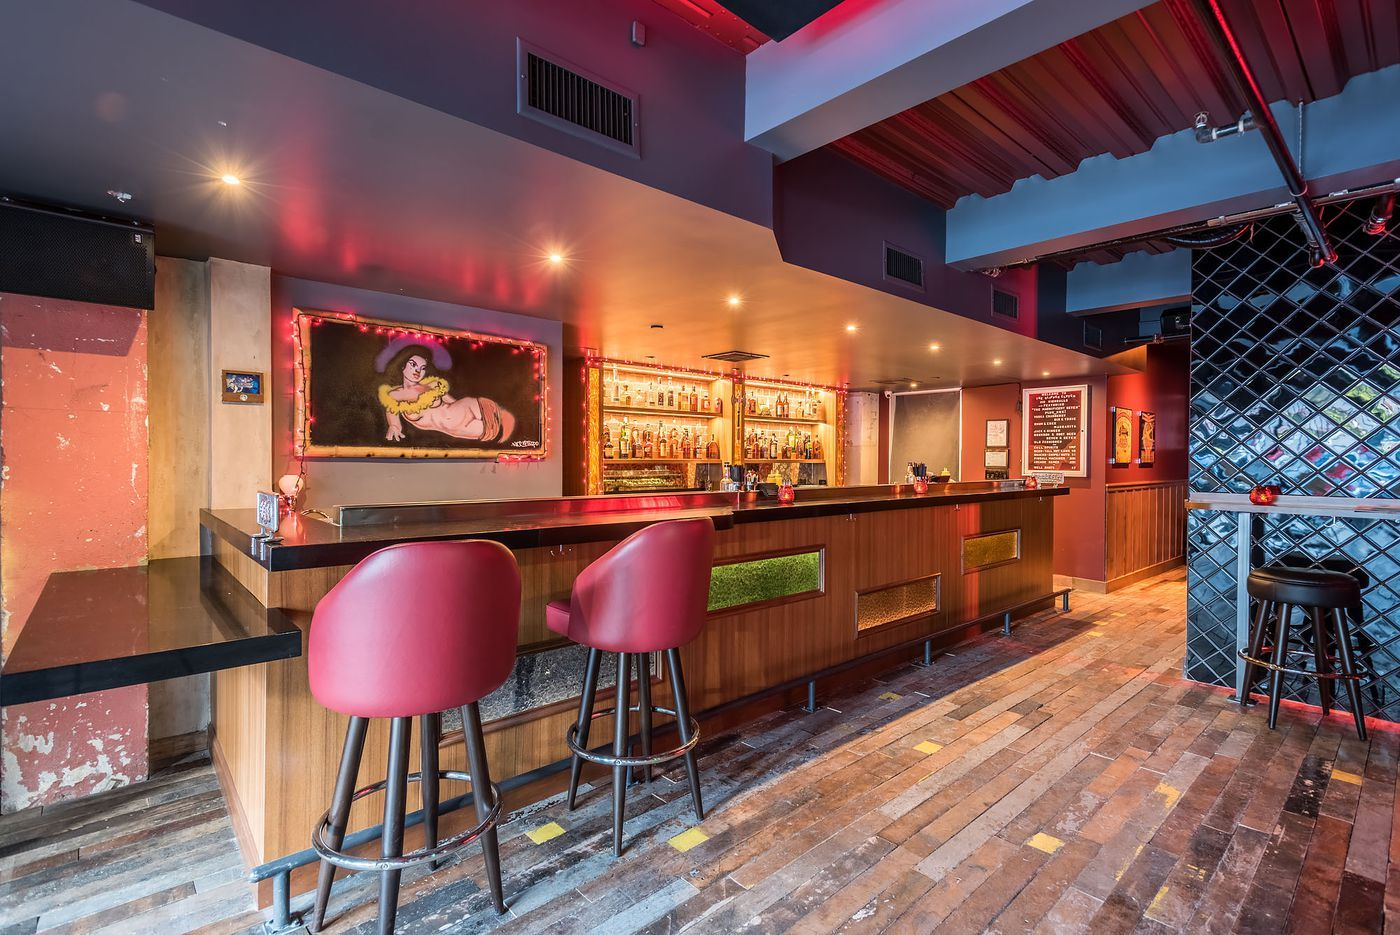 Downtown S Secretive 80s Bar Is The Perfect Throwback Hang Diner Decor Bar Arcade Bar